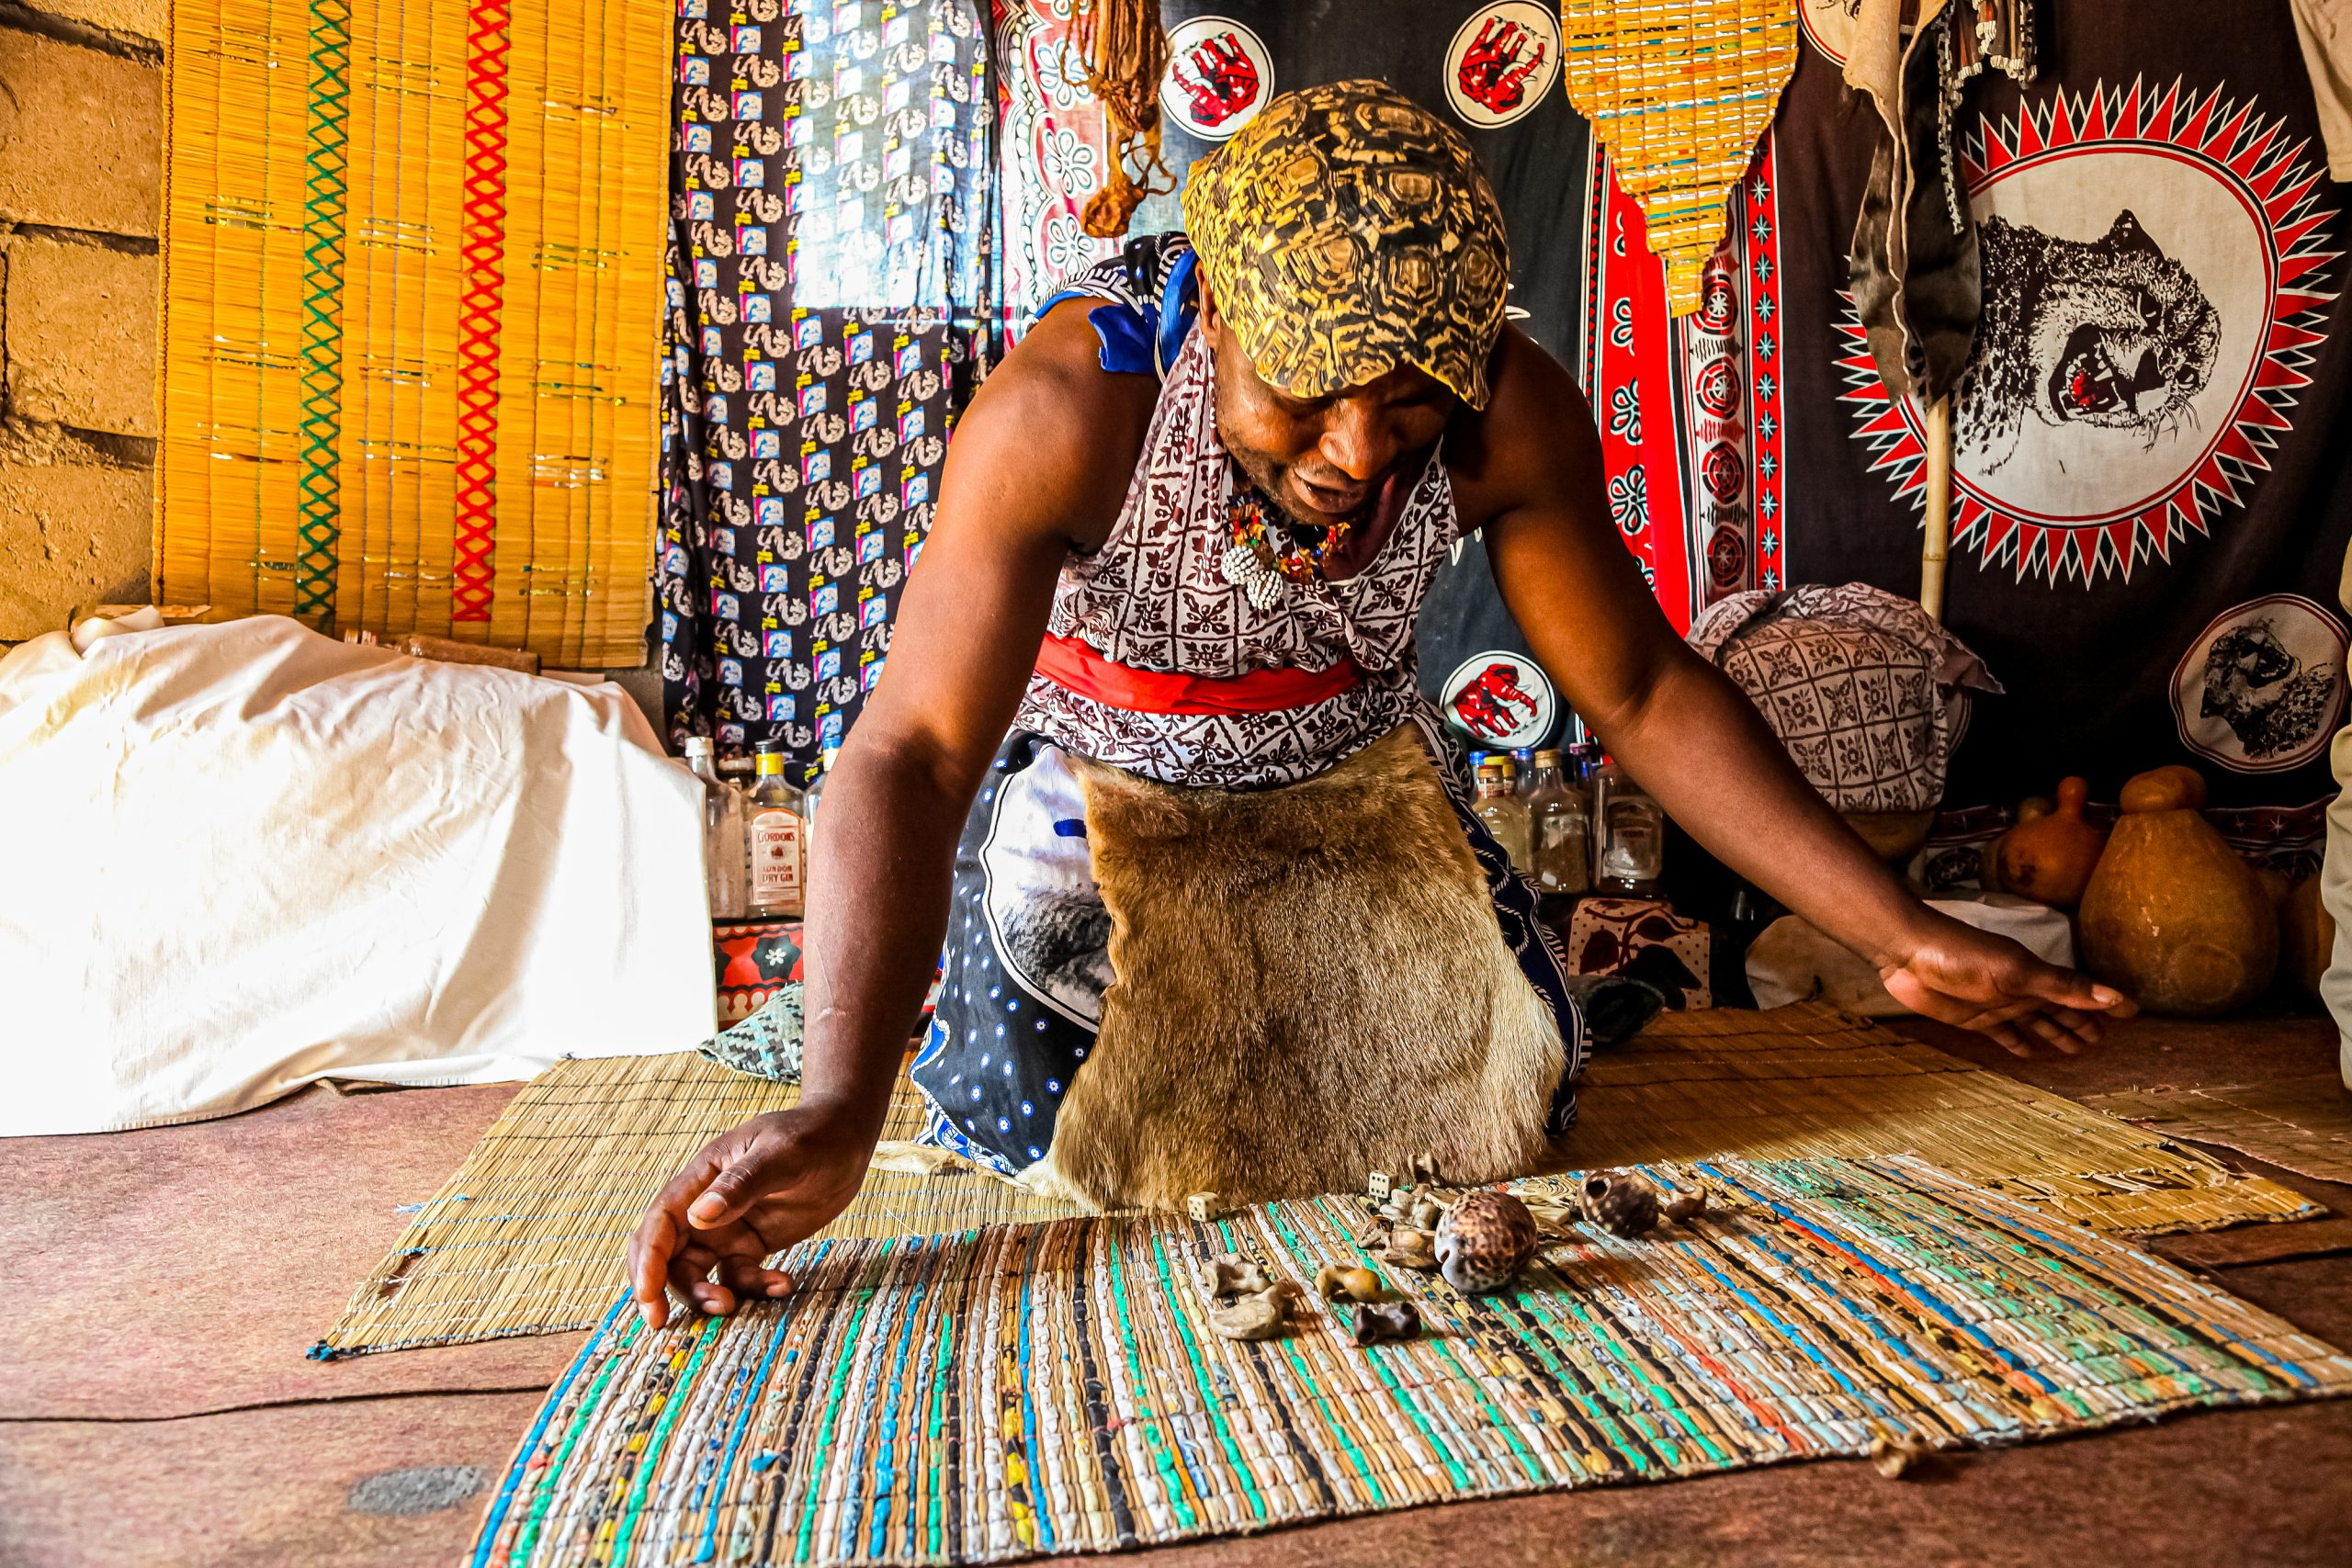 The spiritual journey of becoming a traditional healer